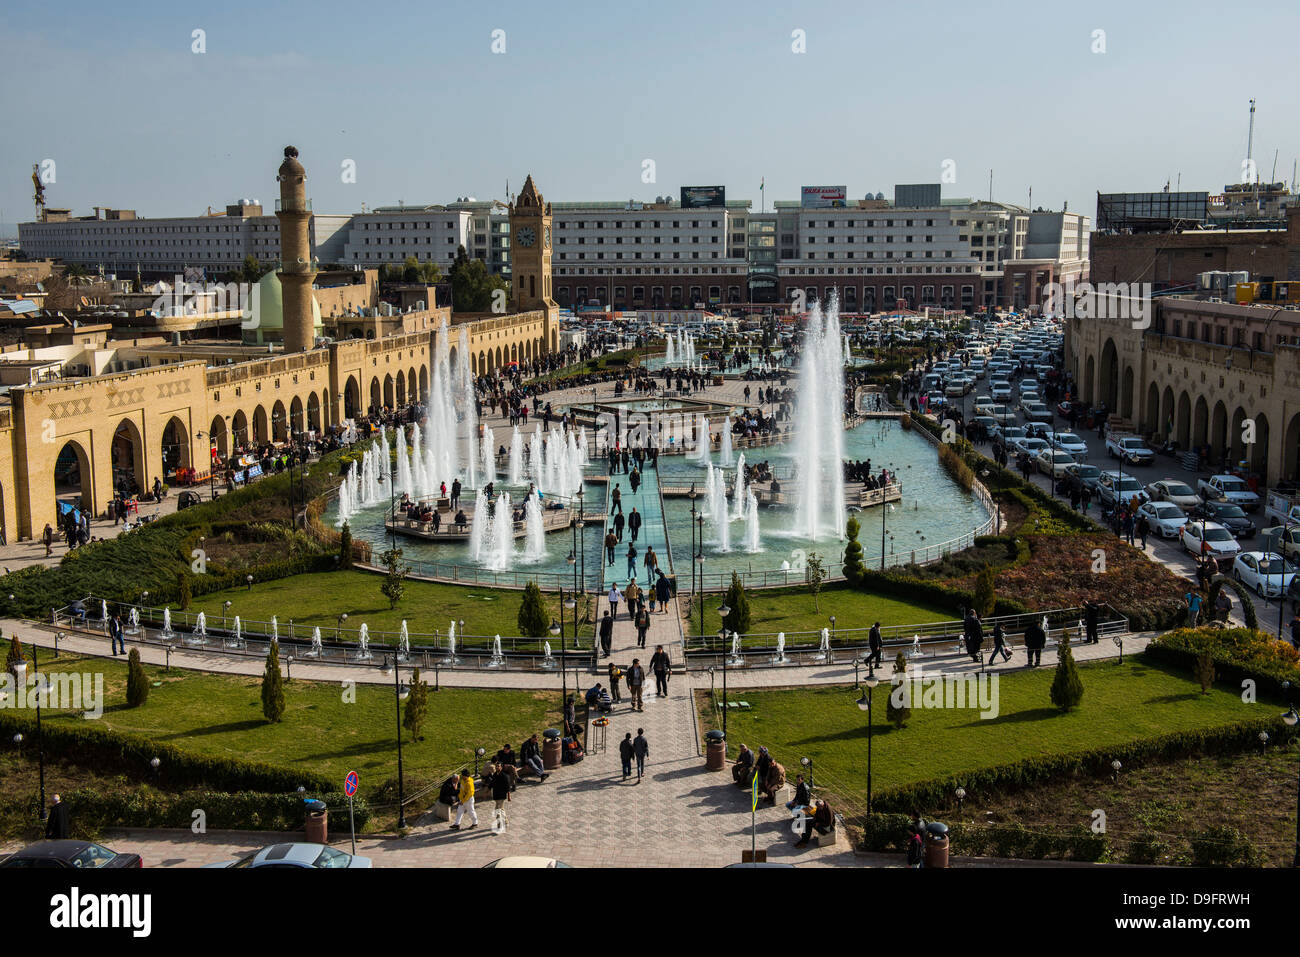 View from the citadel in Erbil (Hawler) over the bazaar, capital of Iraq Kurdistan, Iraq, Middle East - Stock Image